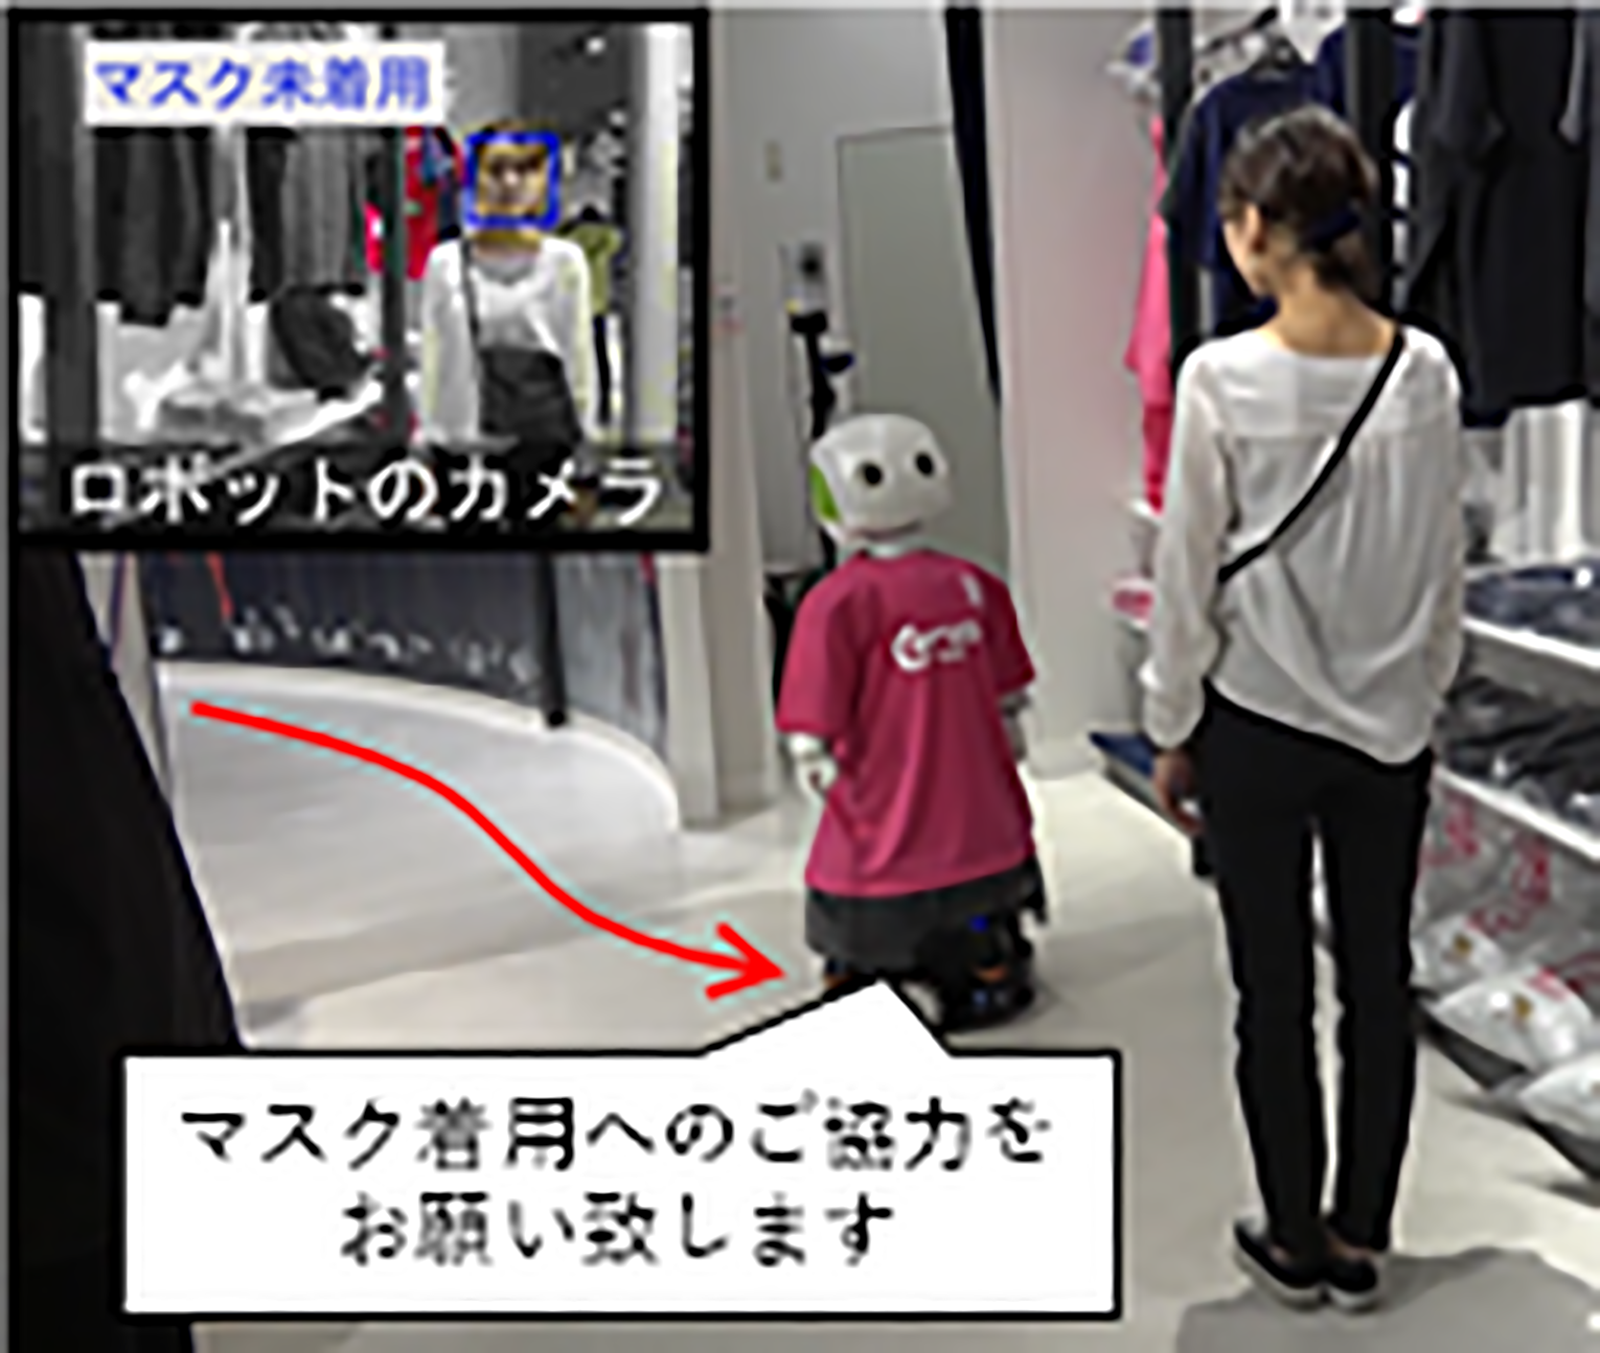 Advanced Telecommunications Research Institute International (ATR) is testing a clerk robot in Osaka that detects if customers are not wearing masks.